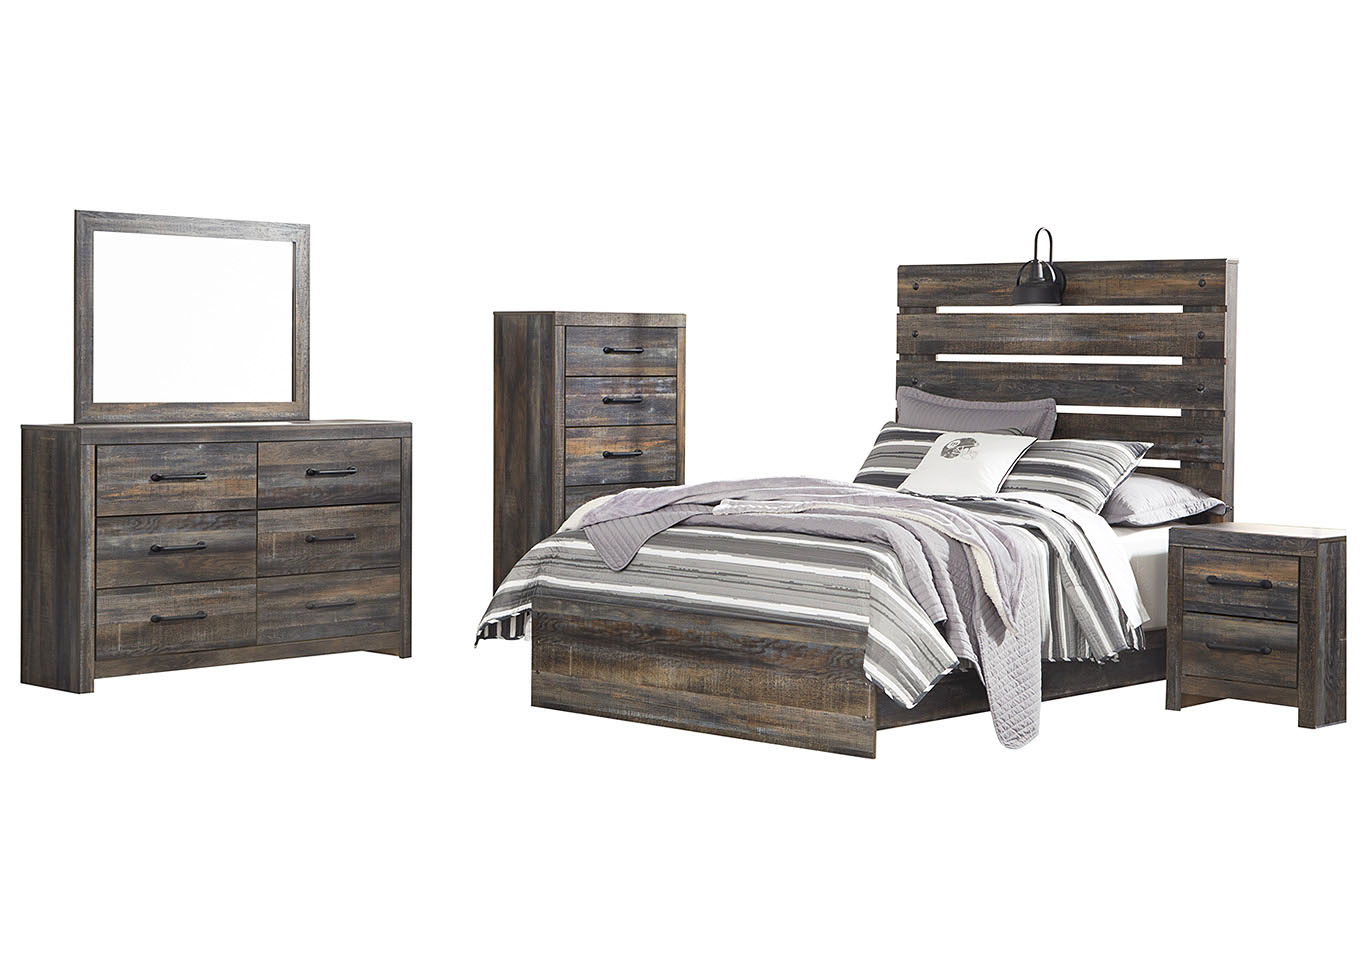 Drystan Full Panel Bed w/Dresser & Mirror,Signature Design By Ashley